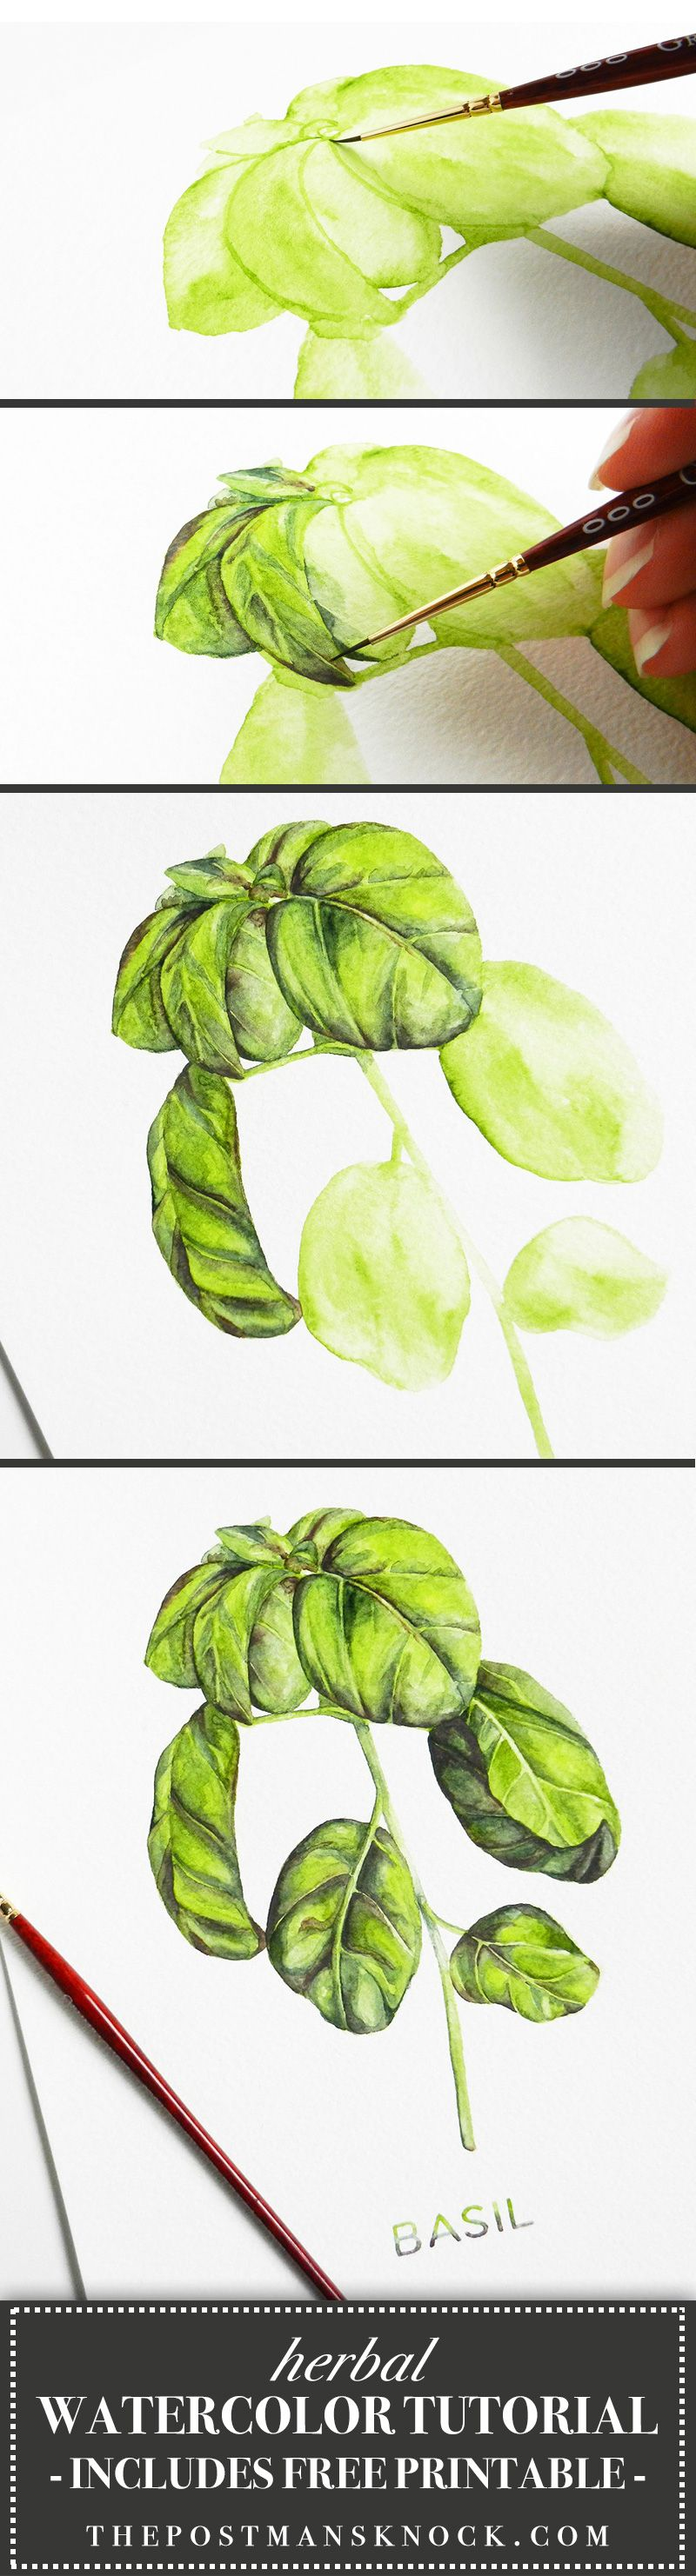 Herbal Watercolor Tutorial A Free Printable Watercolour